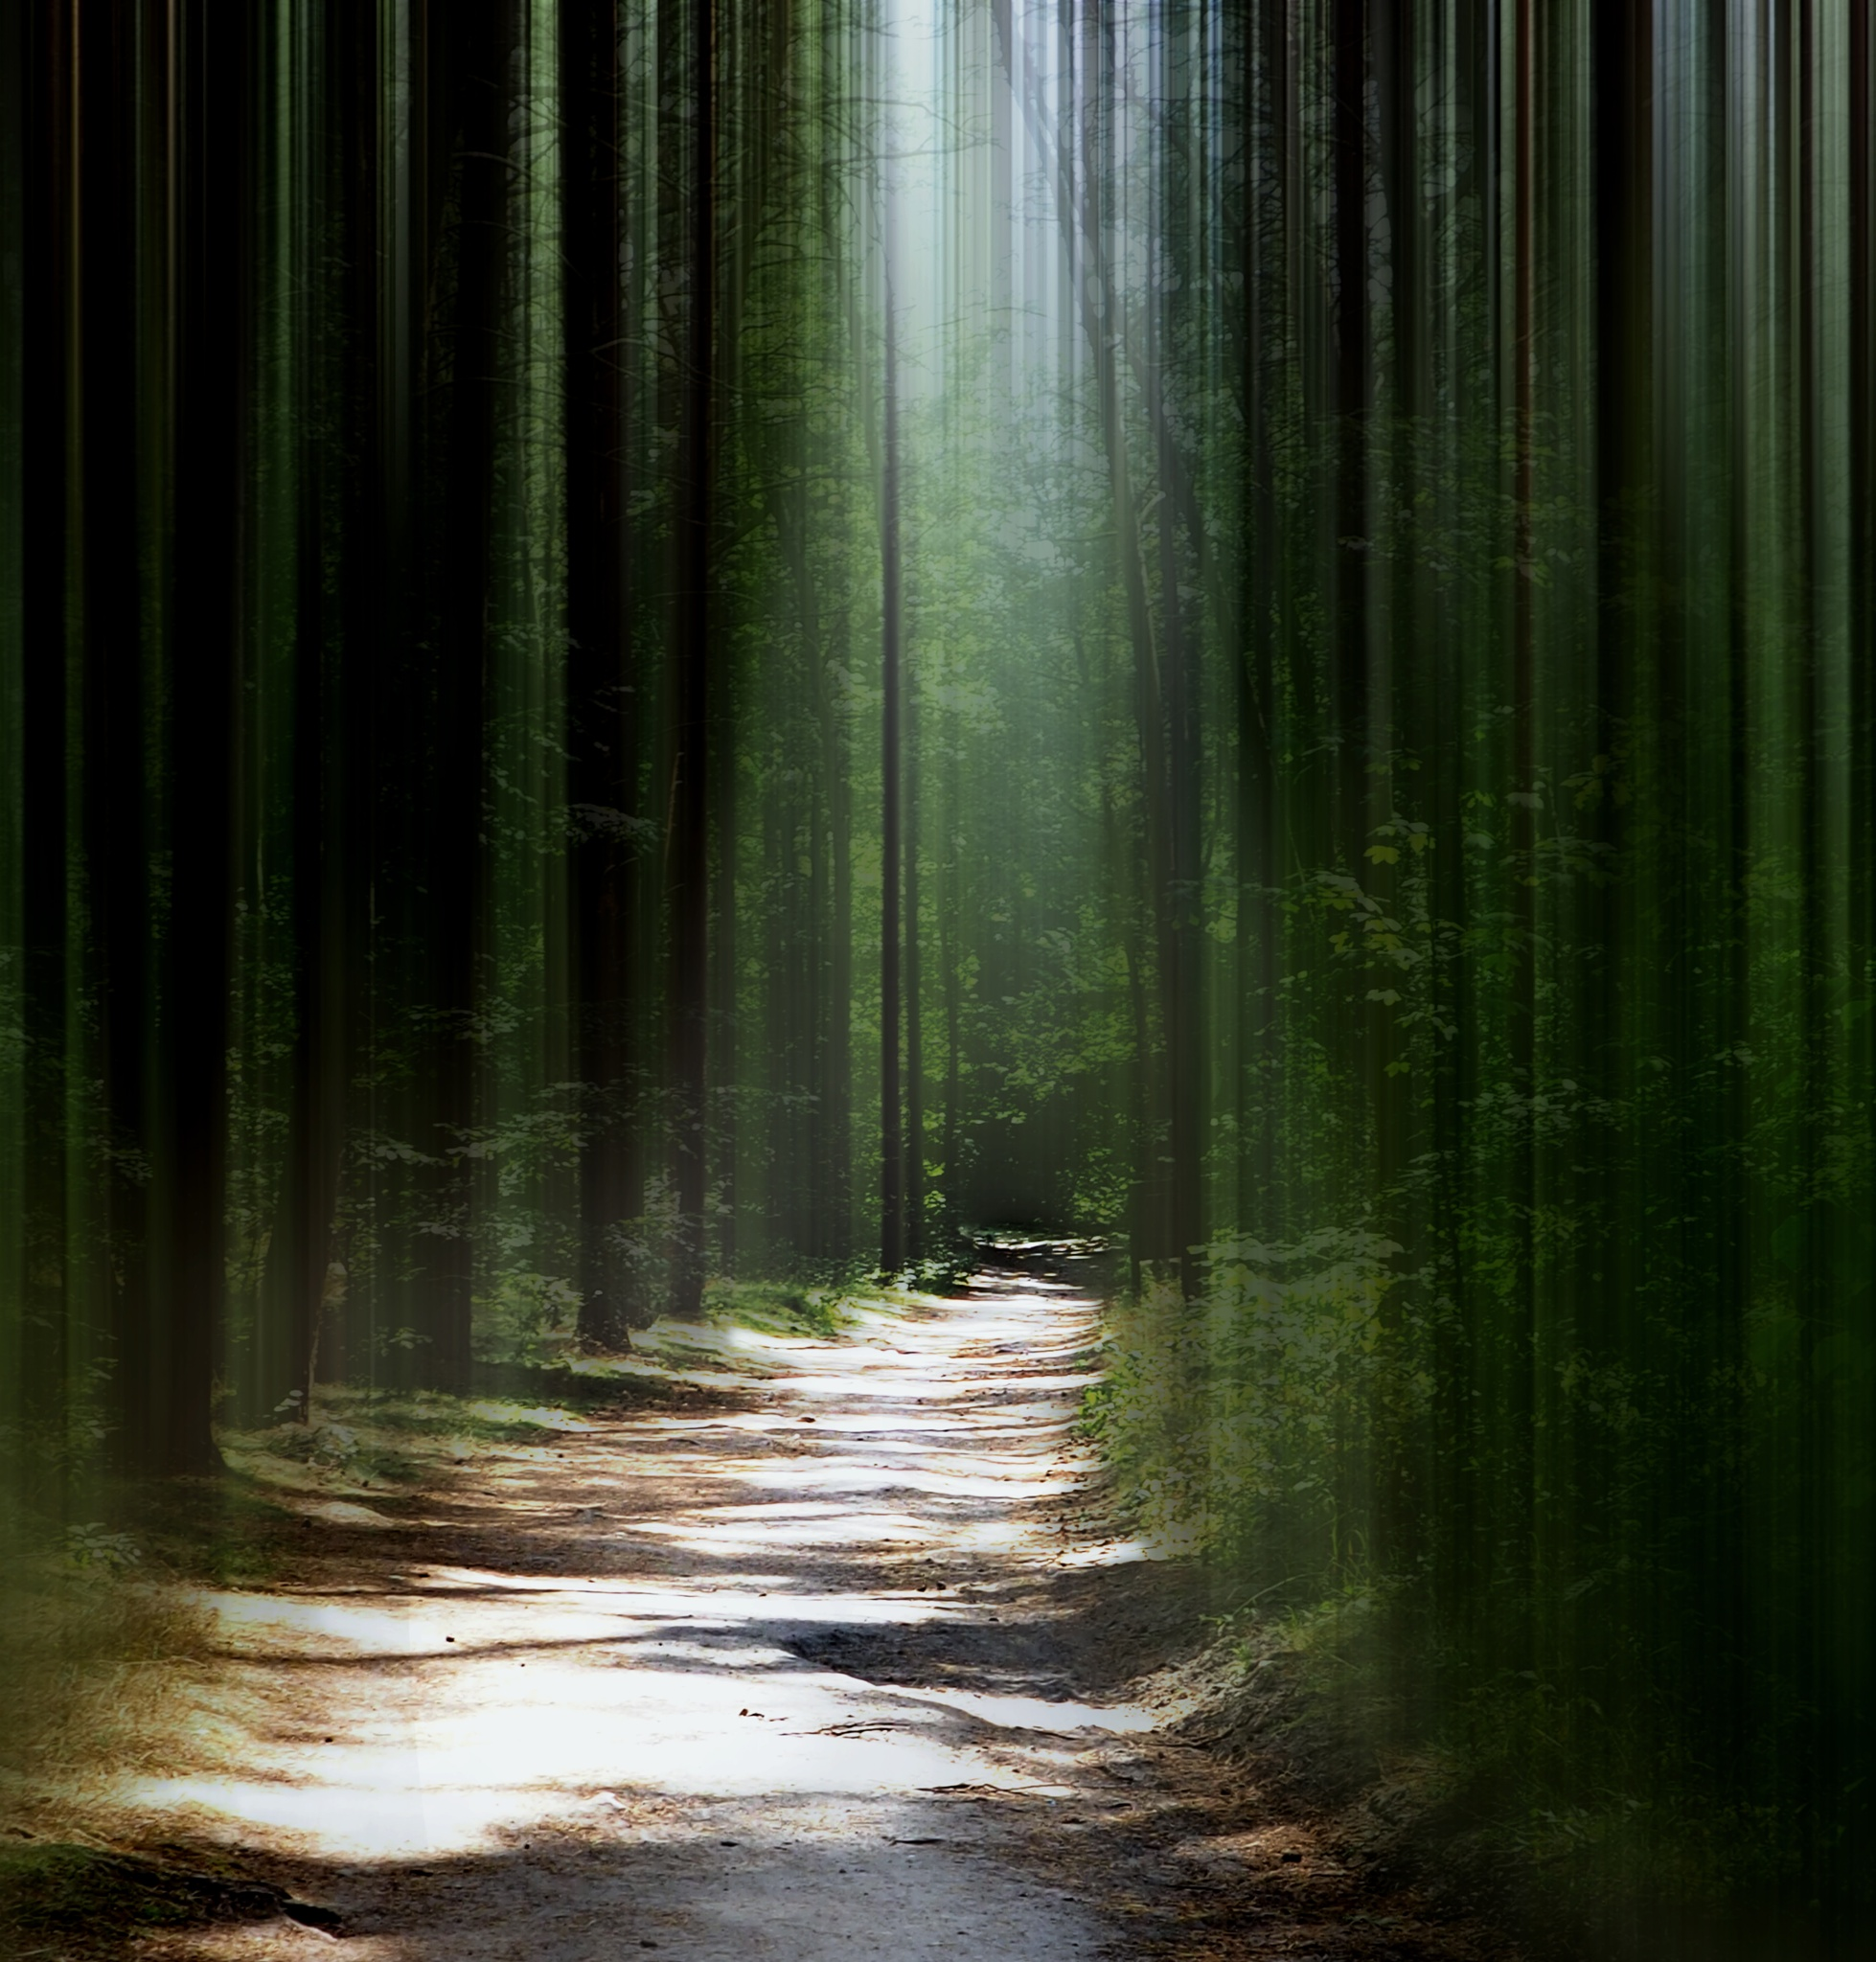 Forest by Britta Rogge